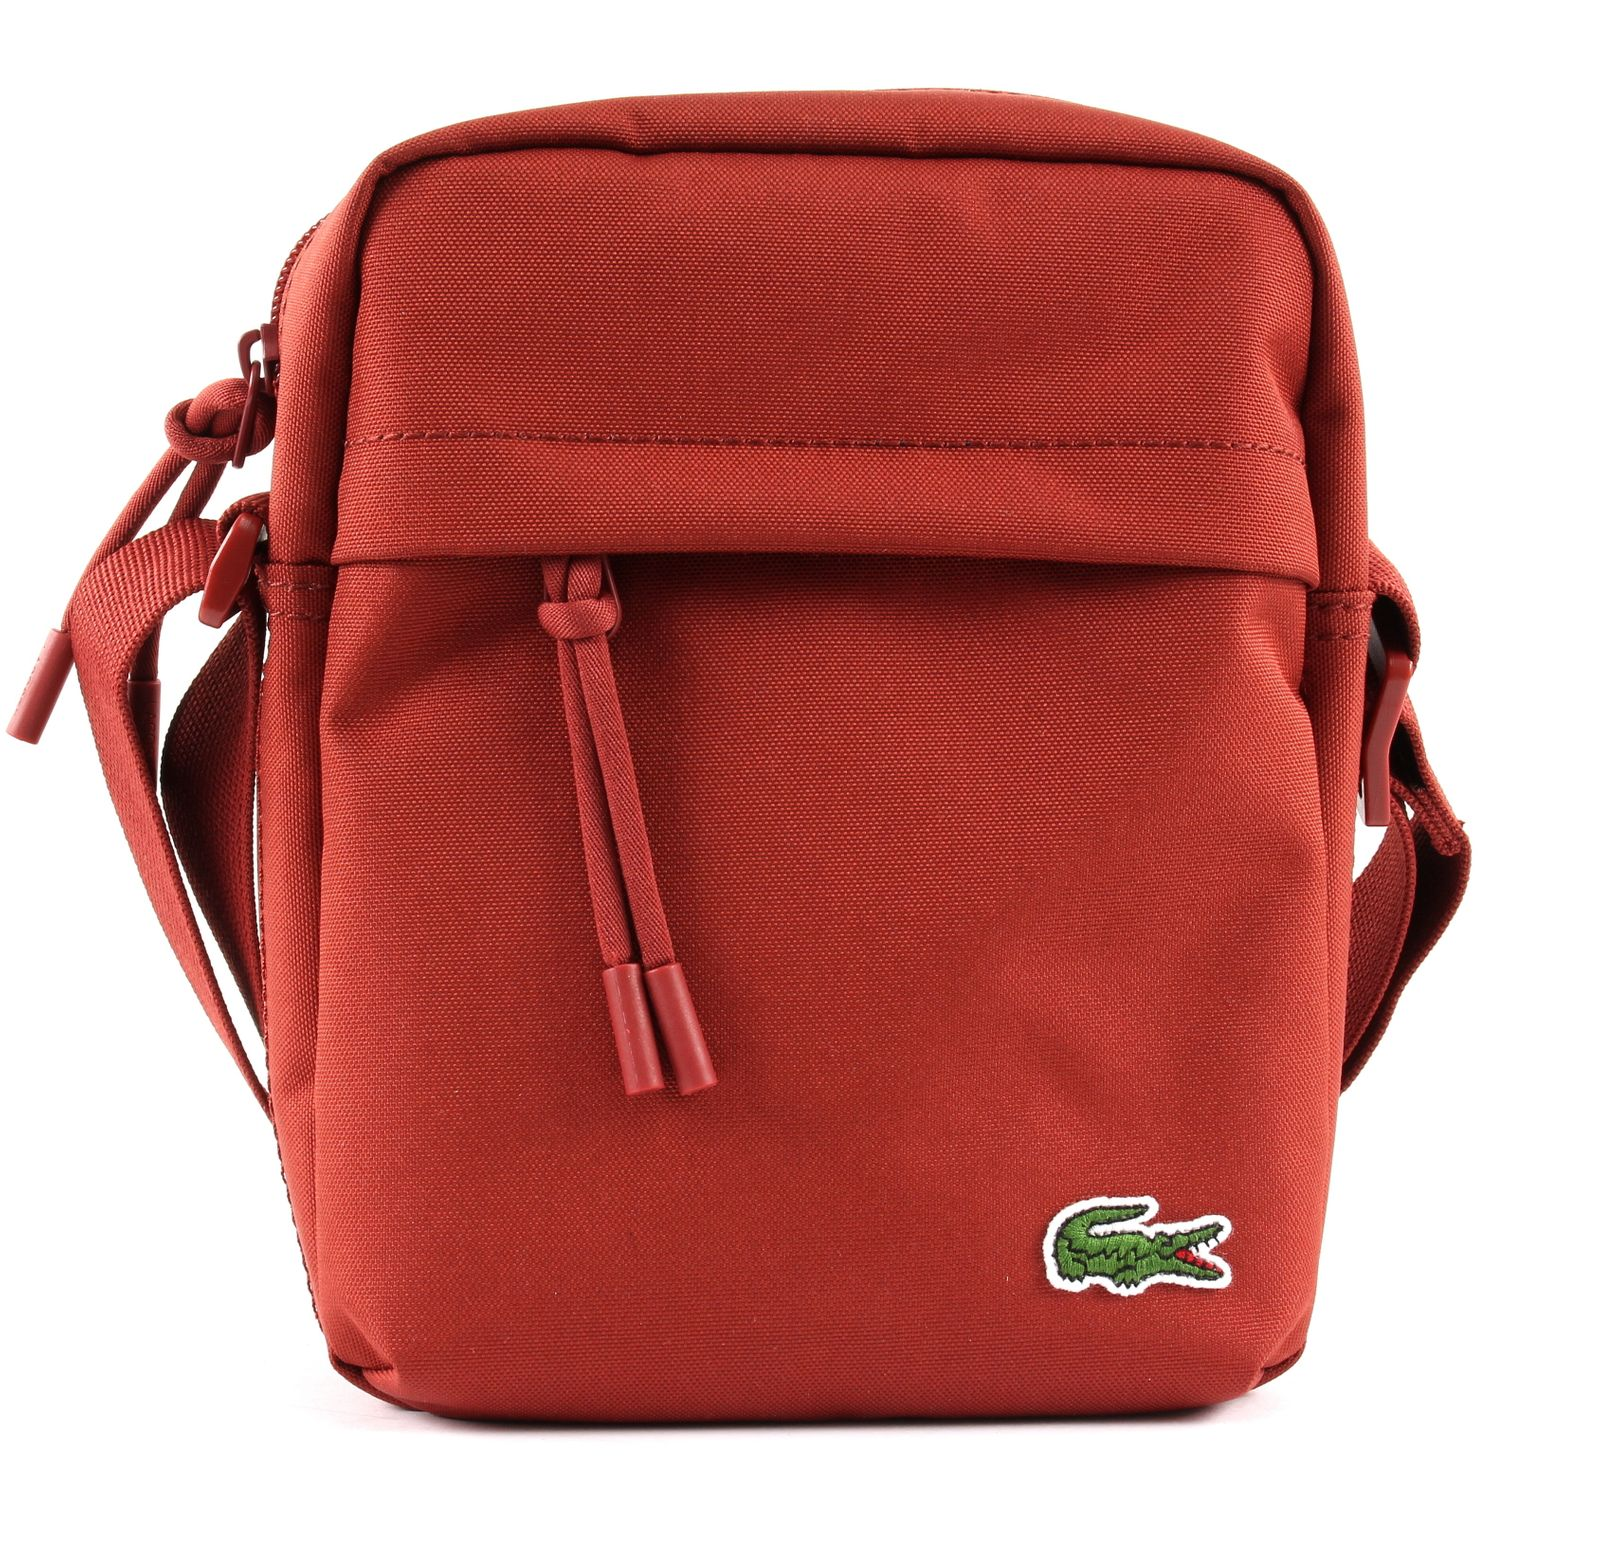 c8881af1150ee LACOSTE-Neocroc-Vertical-Camera-Bag-Burnt-Henna-160437.jpg